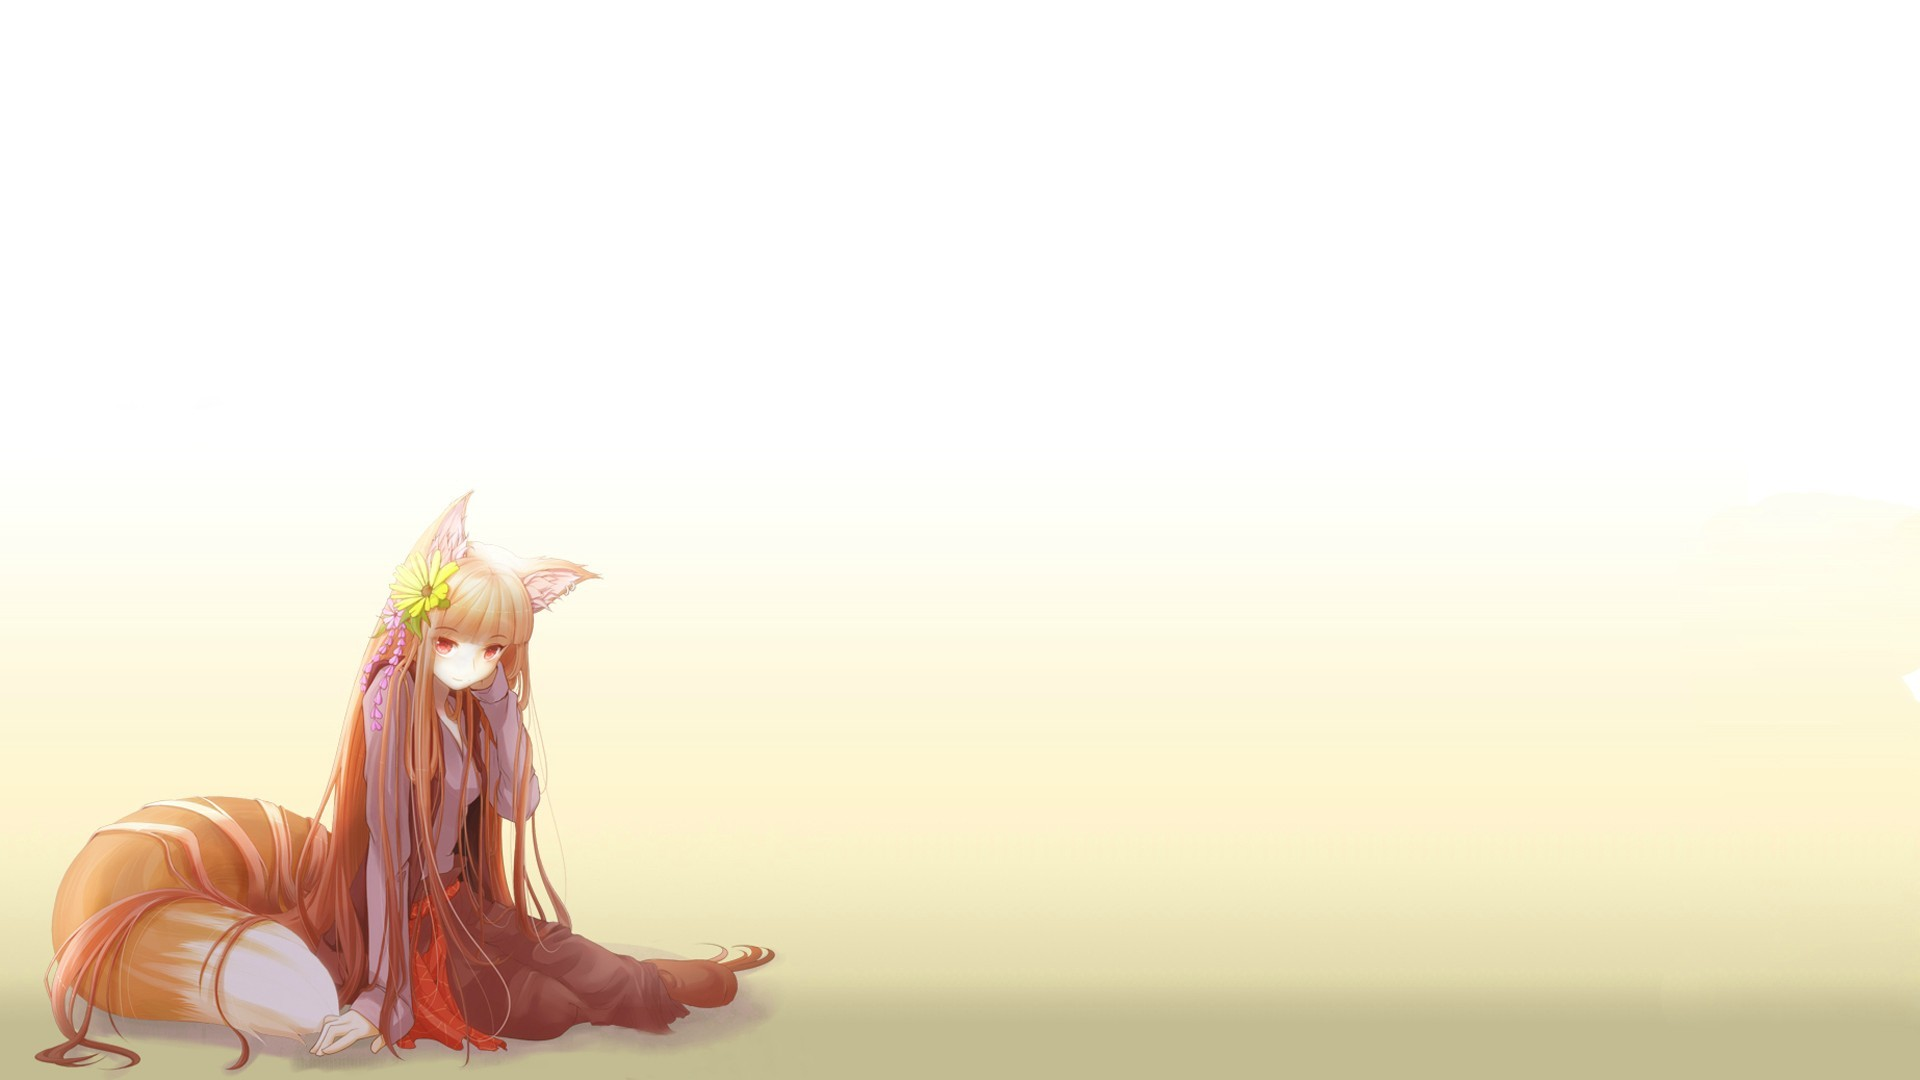 Anime-1920x1080-Spice-and-Wolf-Holo-anime-girls-wallpaper-wp3402452